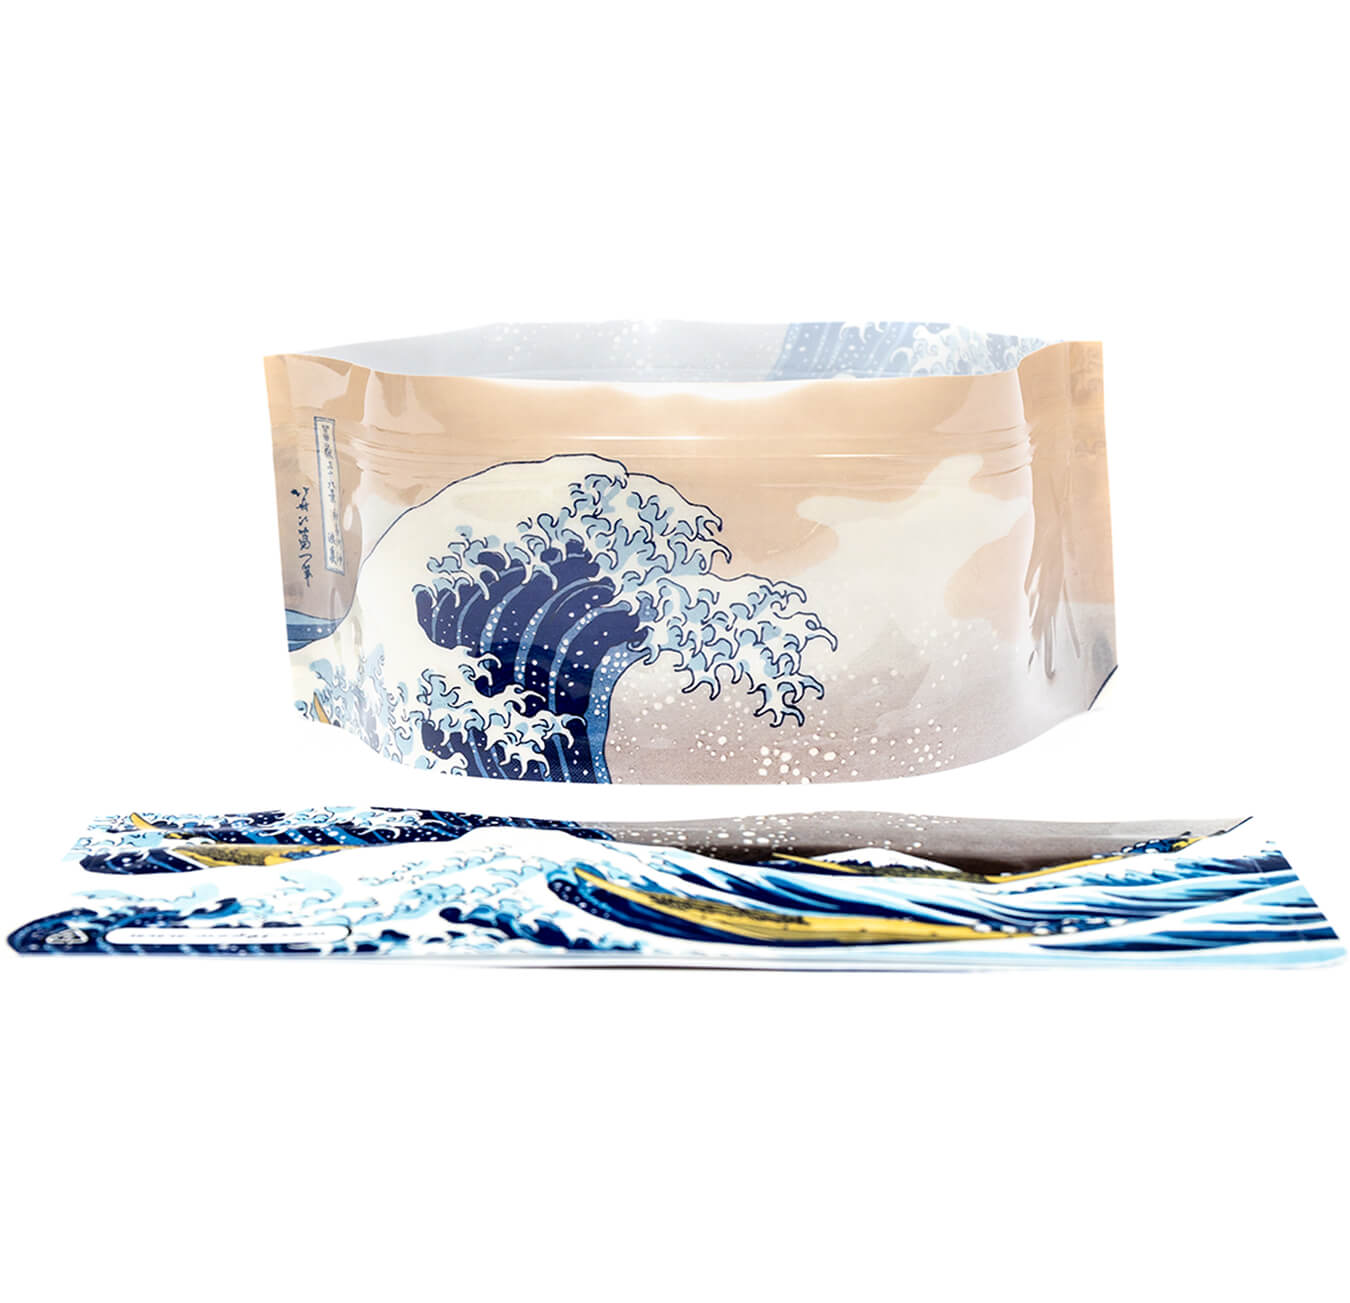 The Great Wave - Set of 2 Bowls